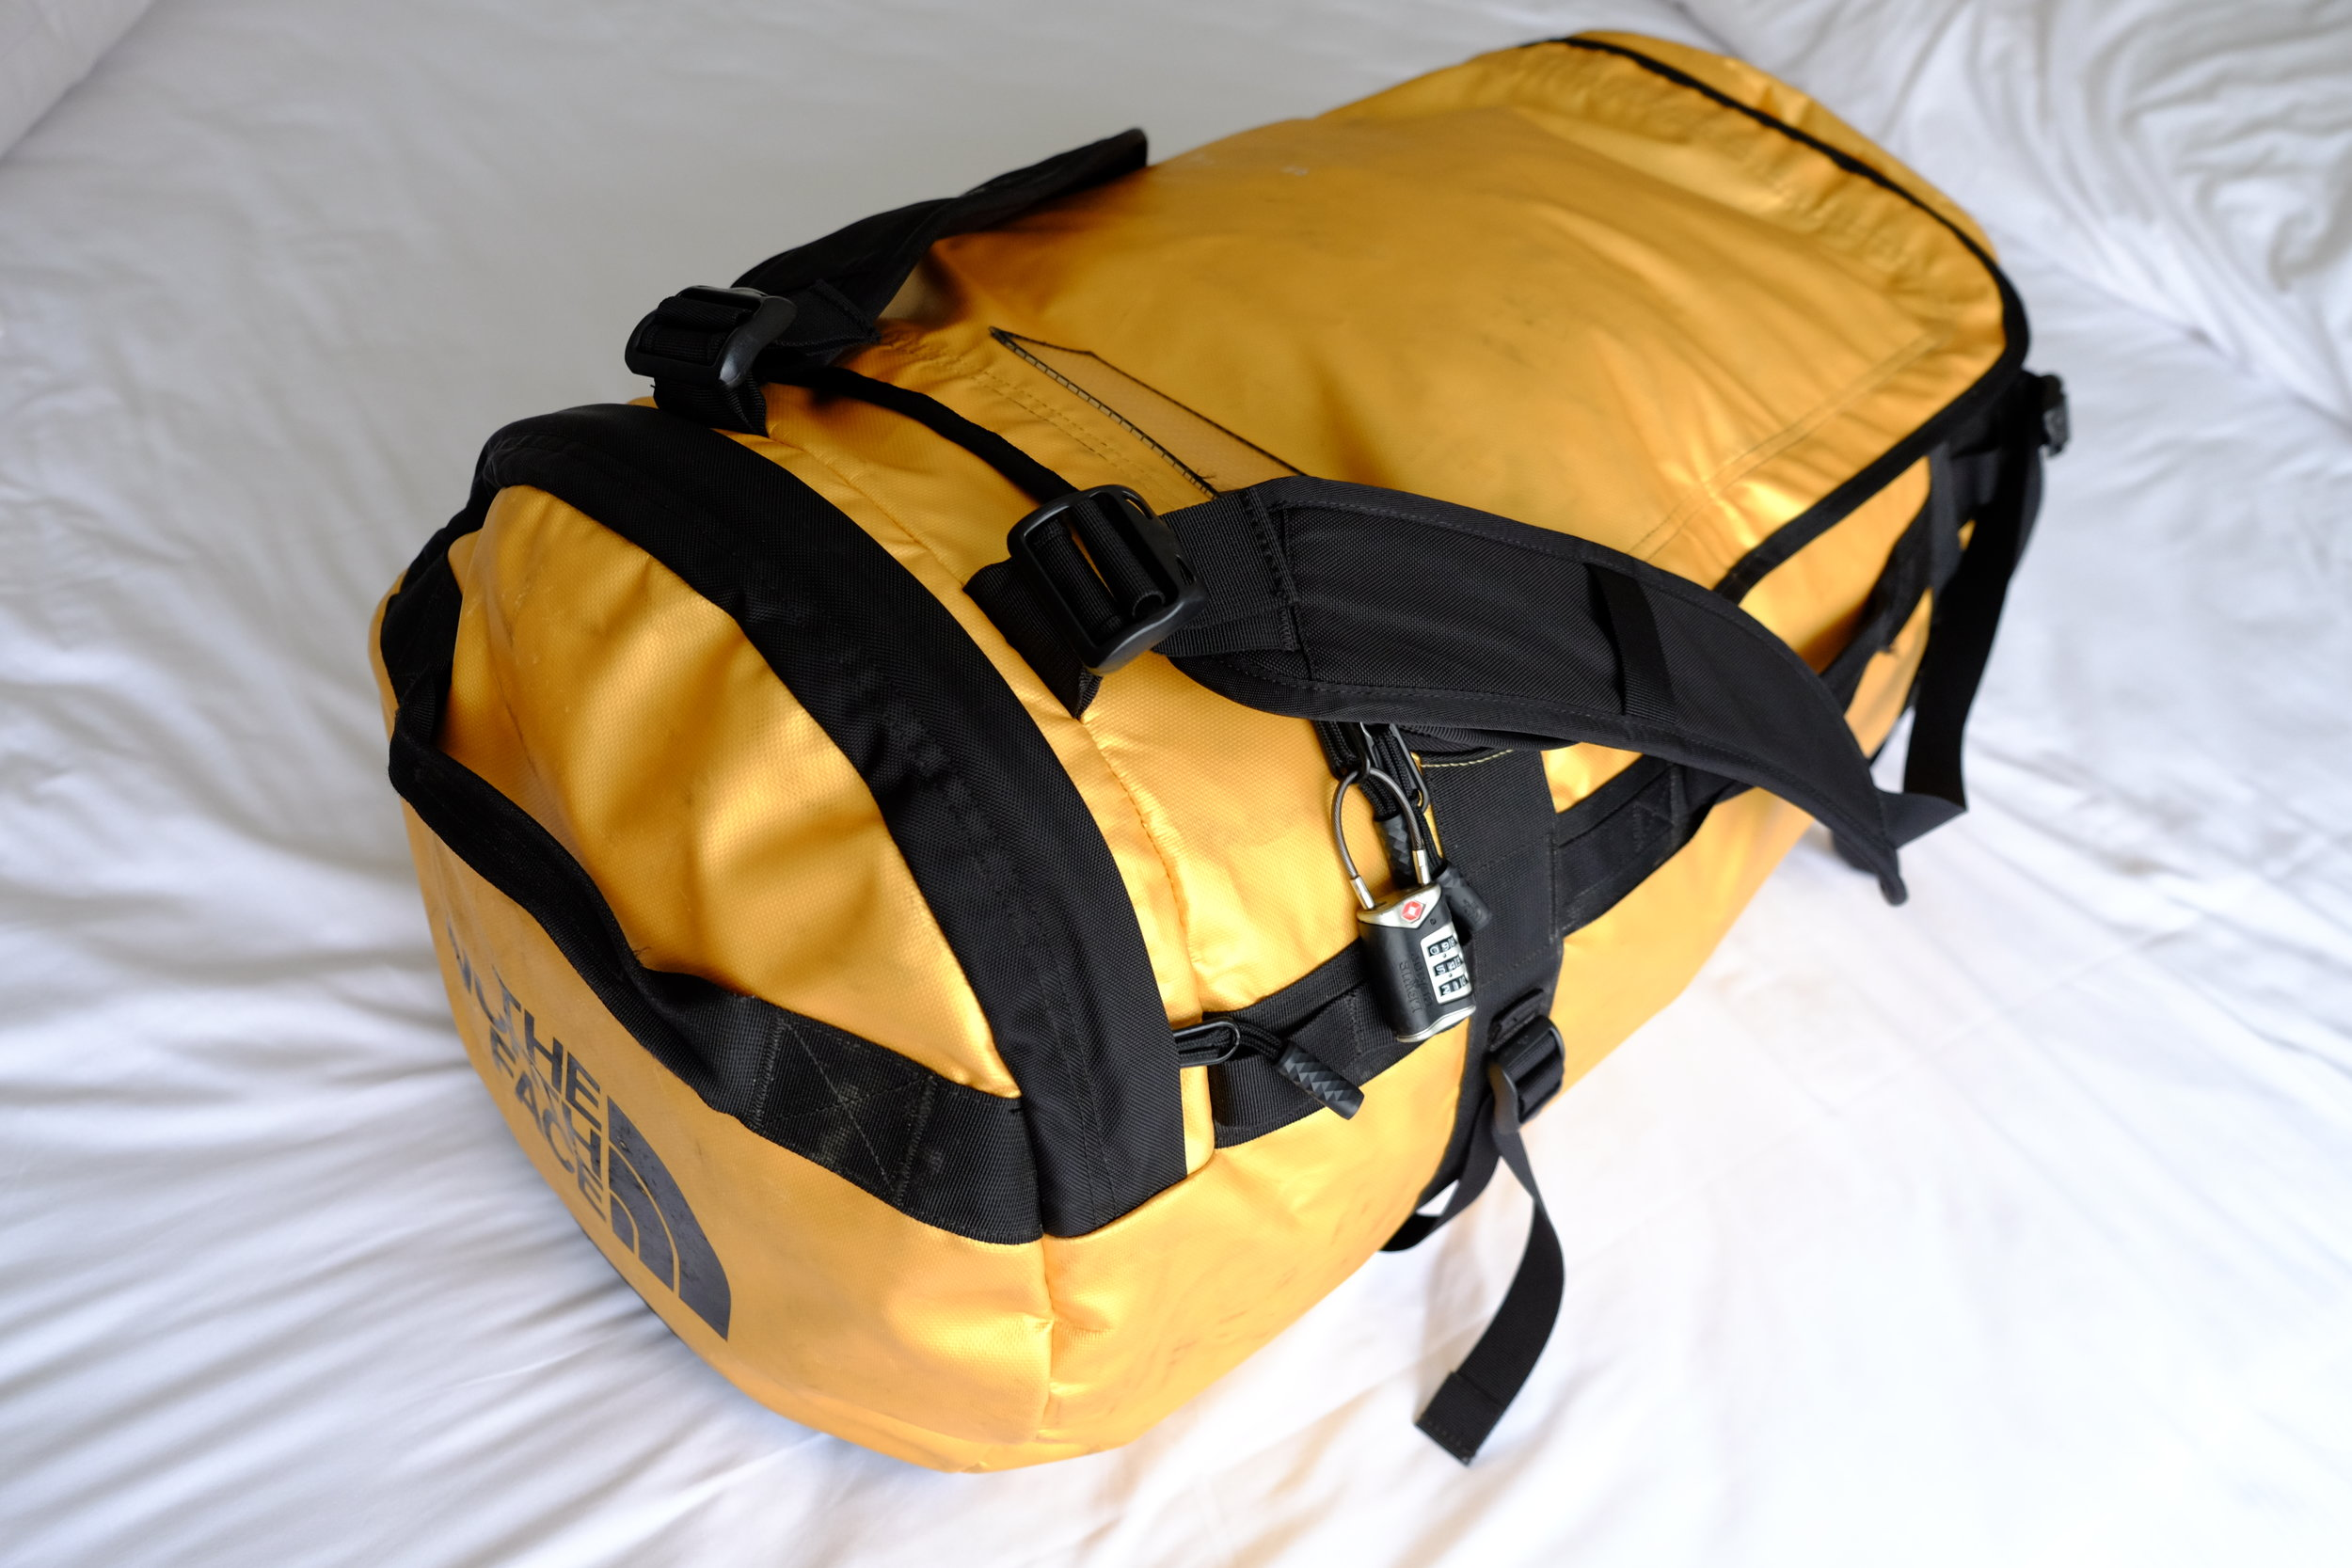 North Face Base Camp Duffel  w/  Lewis N. Clark combination cable lock . This is how it looks with EVERYTHING (incl daypack & boots)stuffed into the duffel